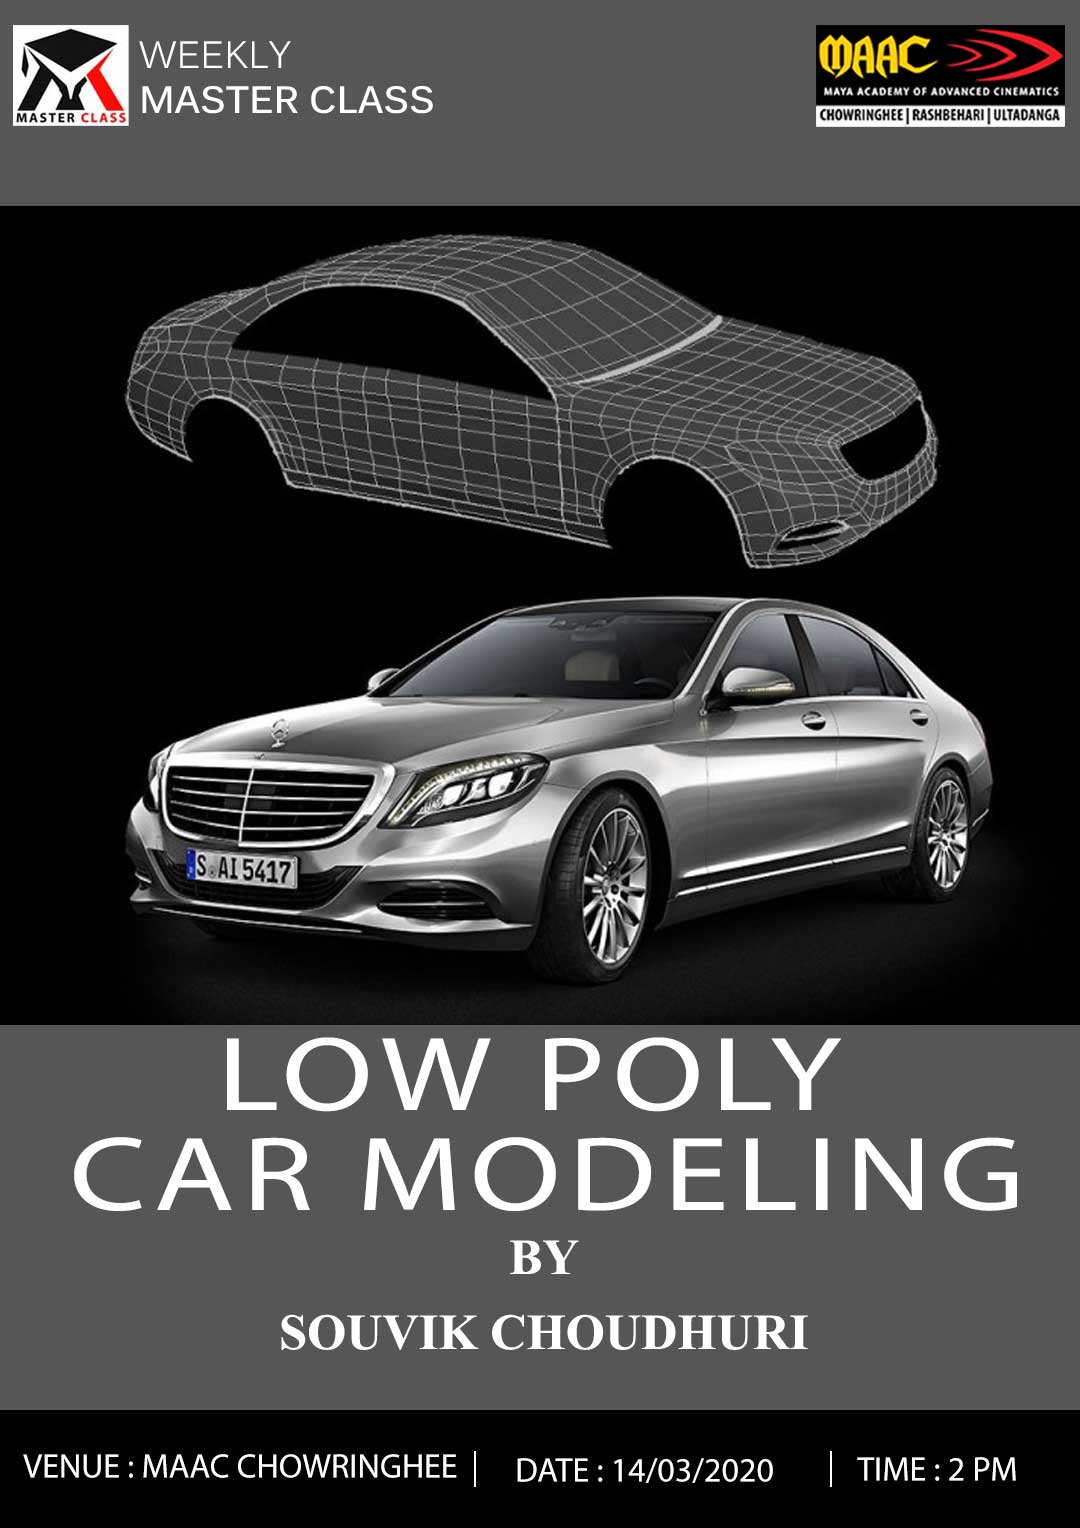 Weekly Master Class on Low Poly Car Modeling